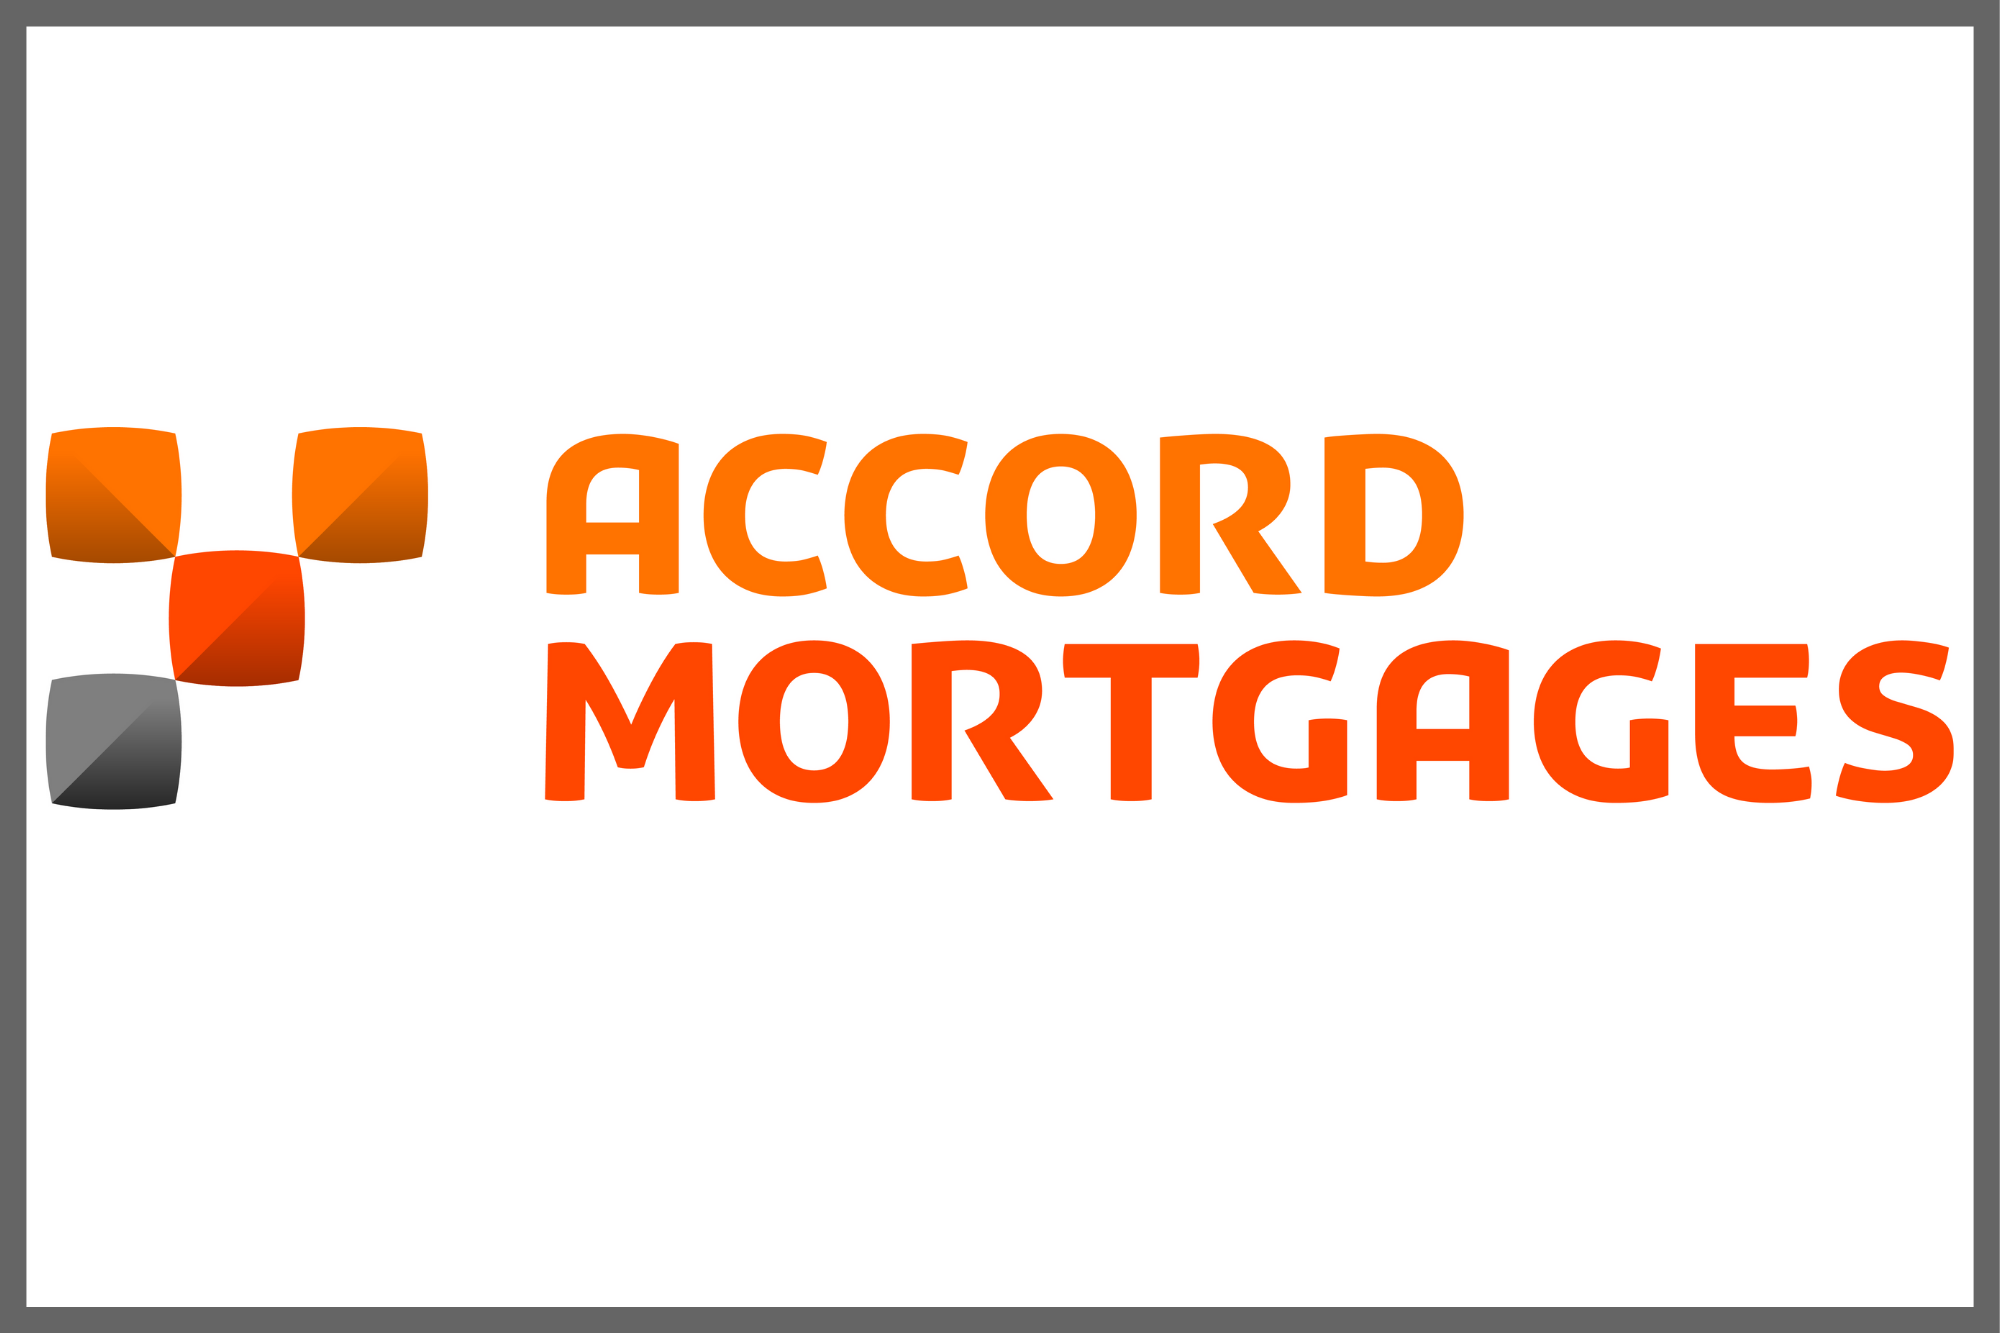 Accord relaunches 90% LTV range for first-time buyers